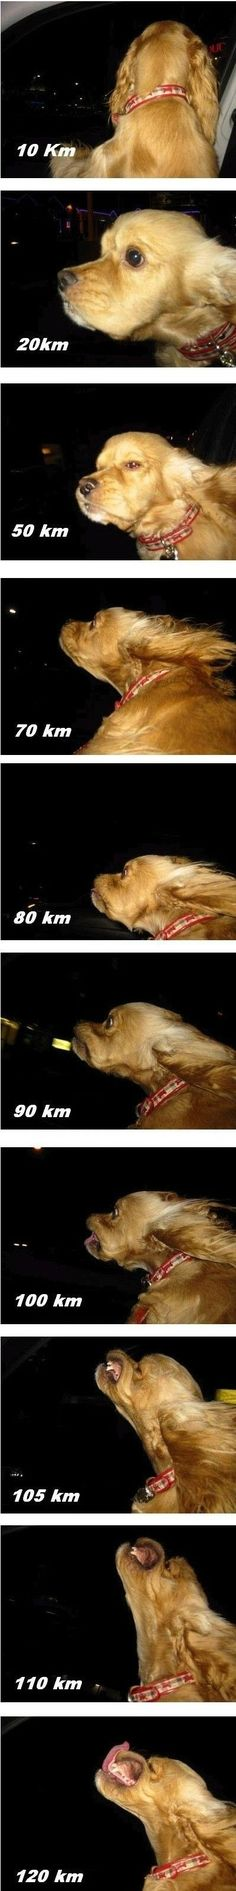 Photos of a dog sticking its head out the car window at increasing speeds...: